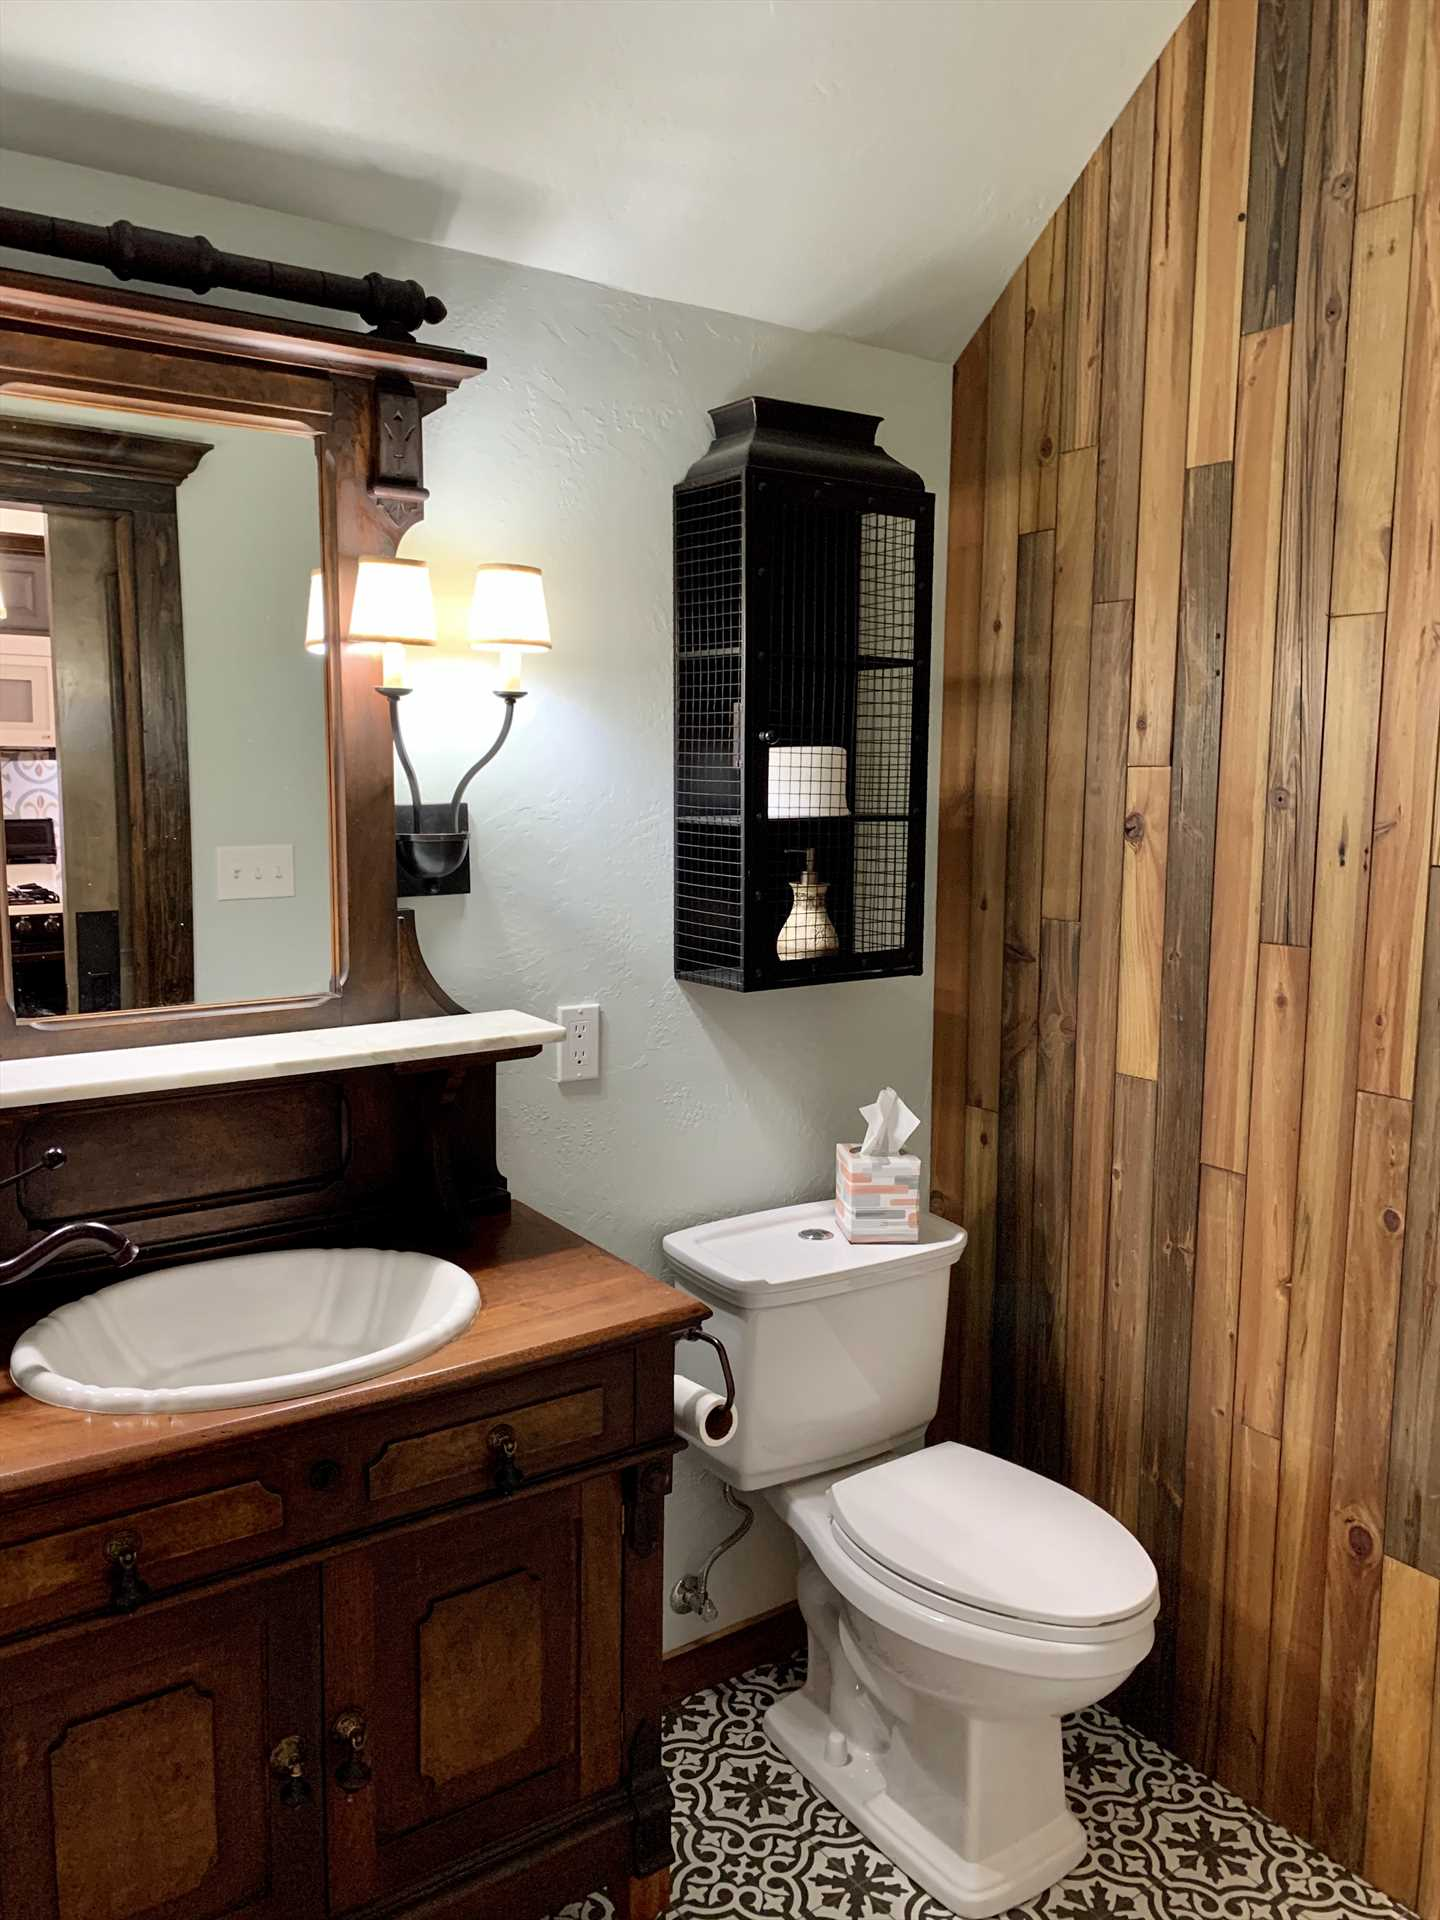 Full Bathroom with high quality finishes